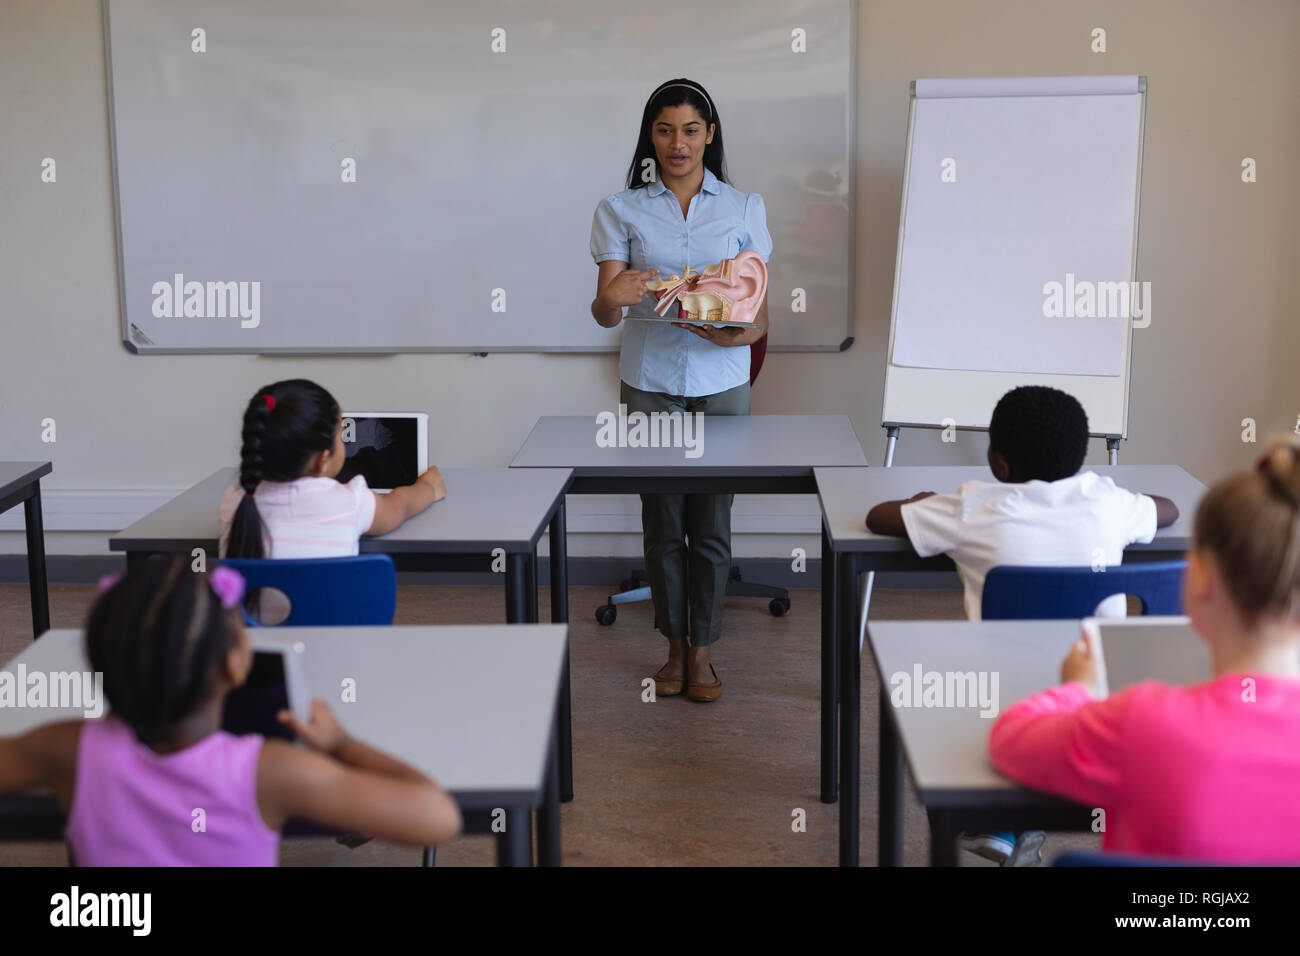 Front view of female teacher explaining anatomy of body parts in classroom of elementary school - Stock Image